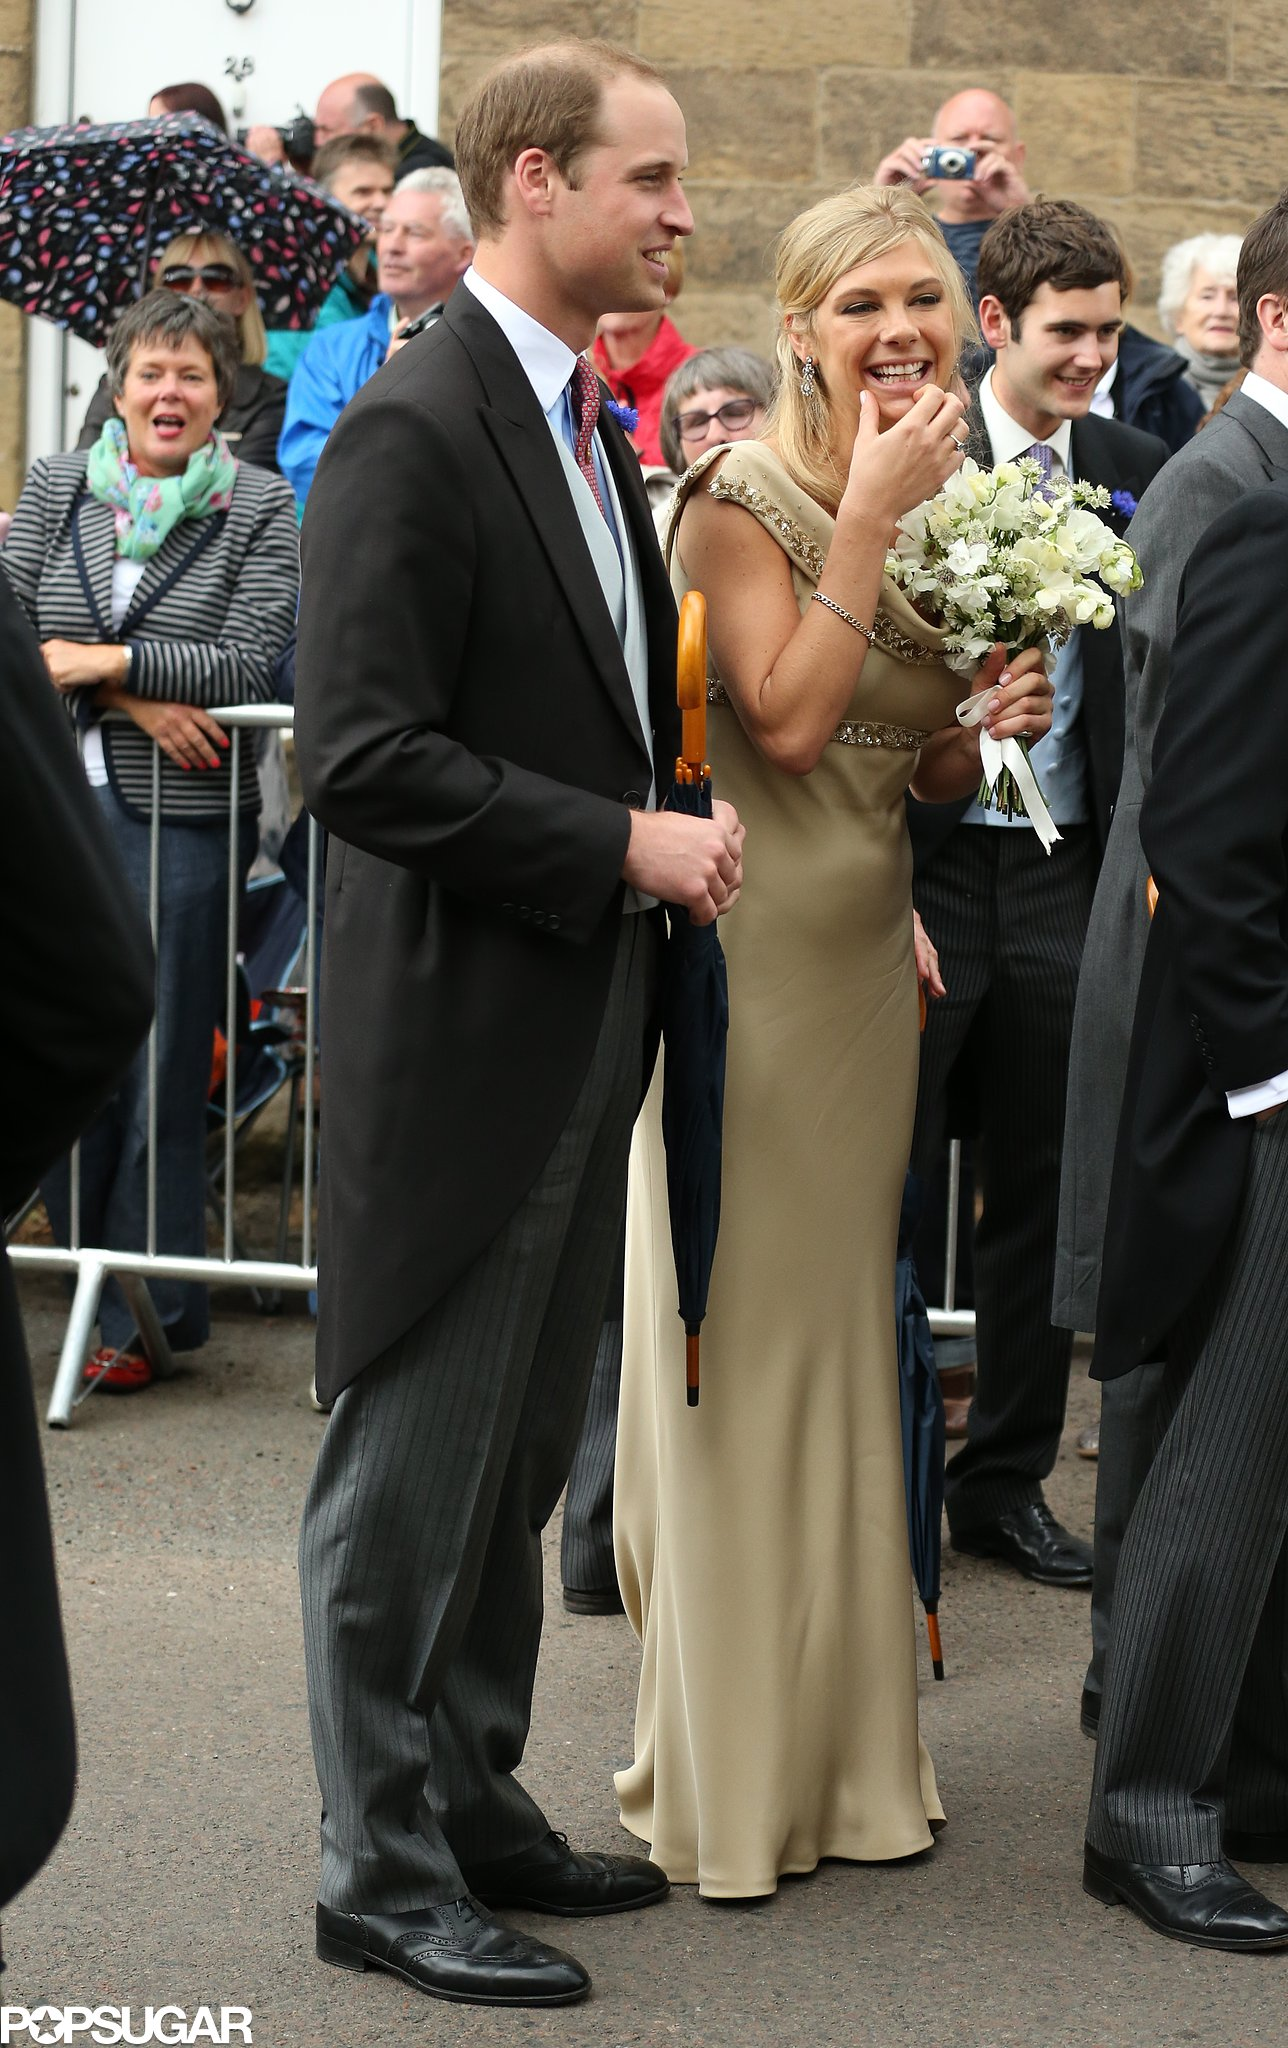 Prince William had a laugh with Prince Harry's ex-girlfriend Chelsy Davy at the royal wedding of pals Lady Melissa Percy and Thomas Van Straubenzee in Northumberland, England.